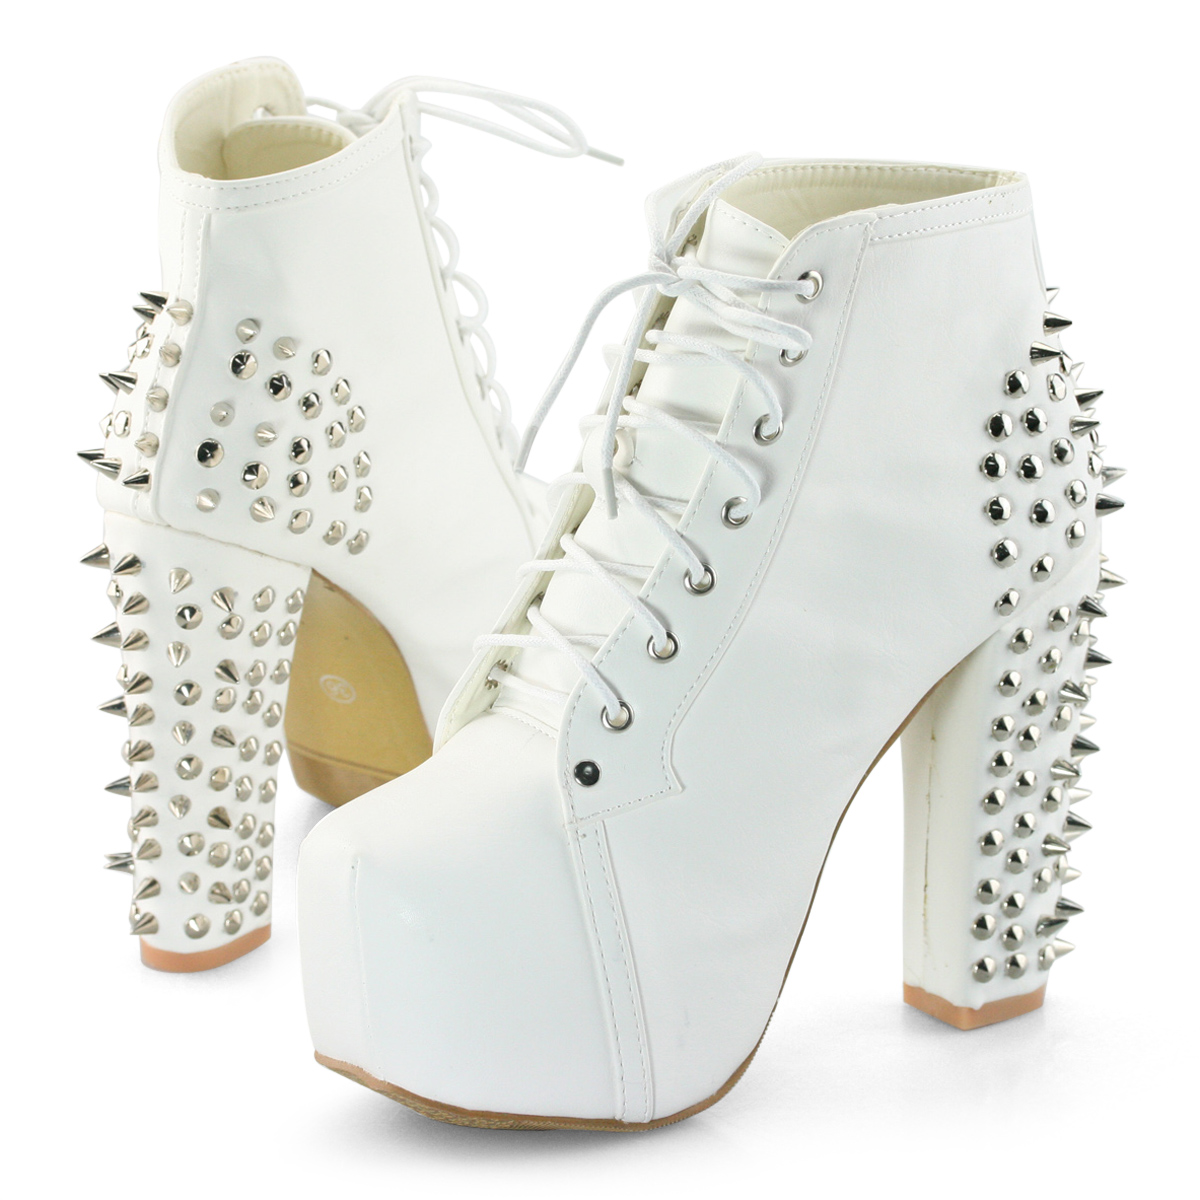 Womens Spike Studded Goth Punk Rock Platform High Heel Shoes Lace Up Ankle Boots | eBay